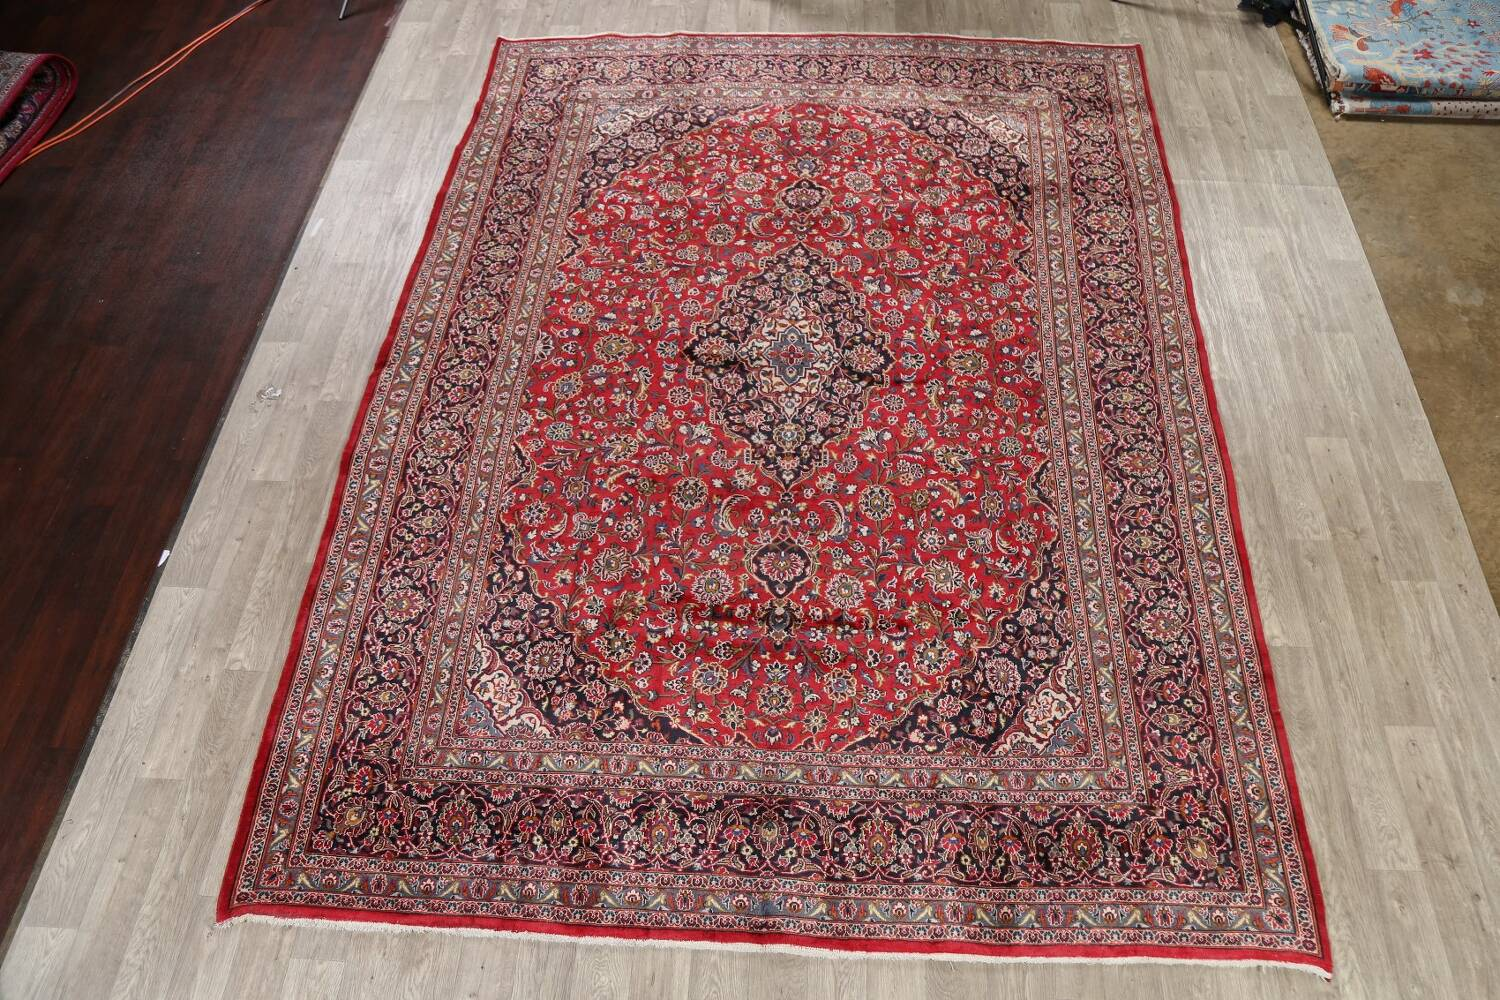 Vintage Floral Mashad Persian Red Area Rug 9x13 image 2